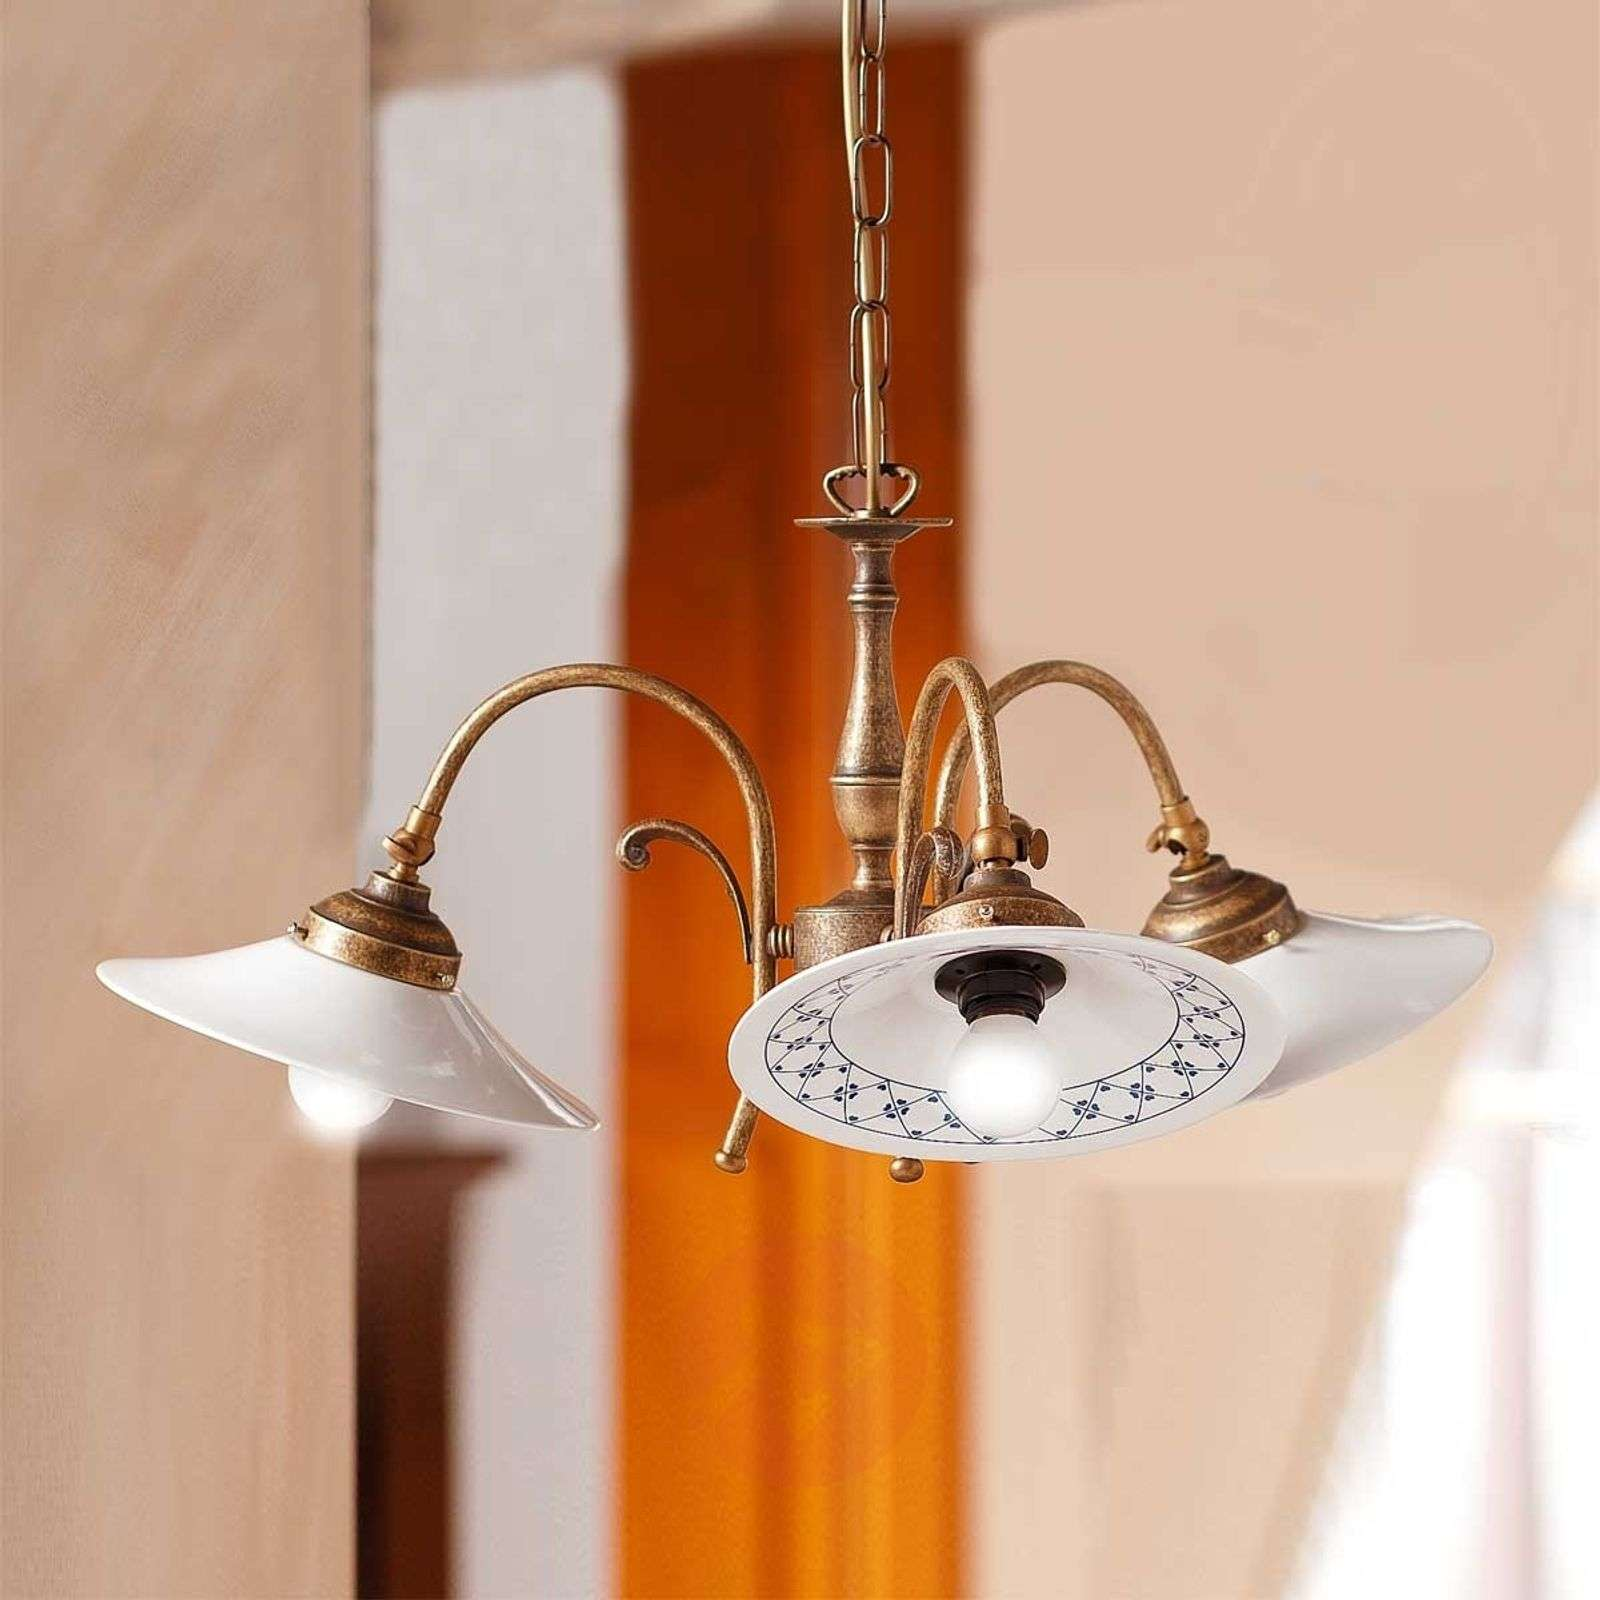 Suspension à 3 lampes ORLO campagnarde-2013051-01